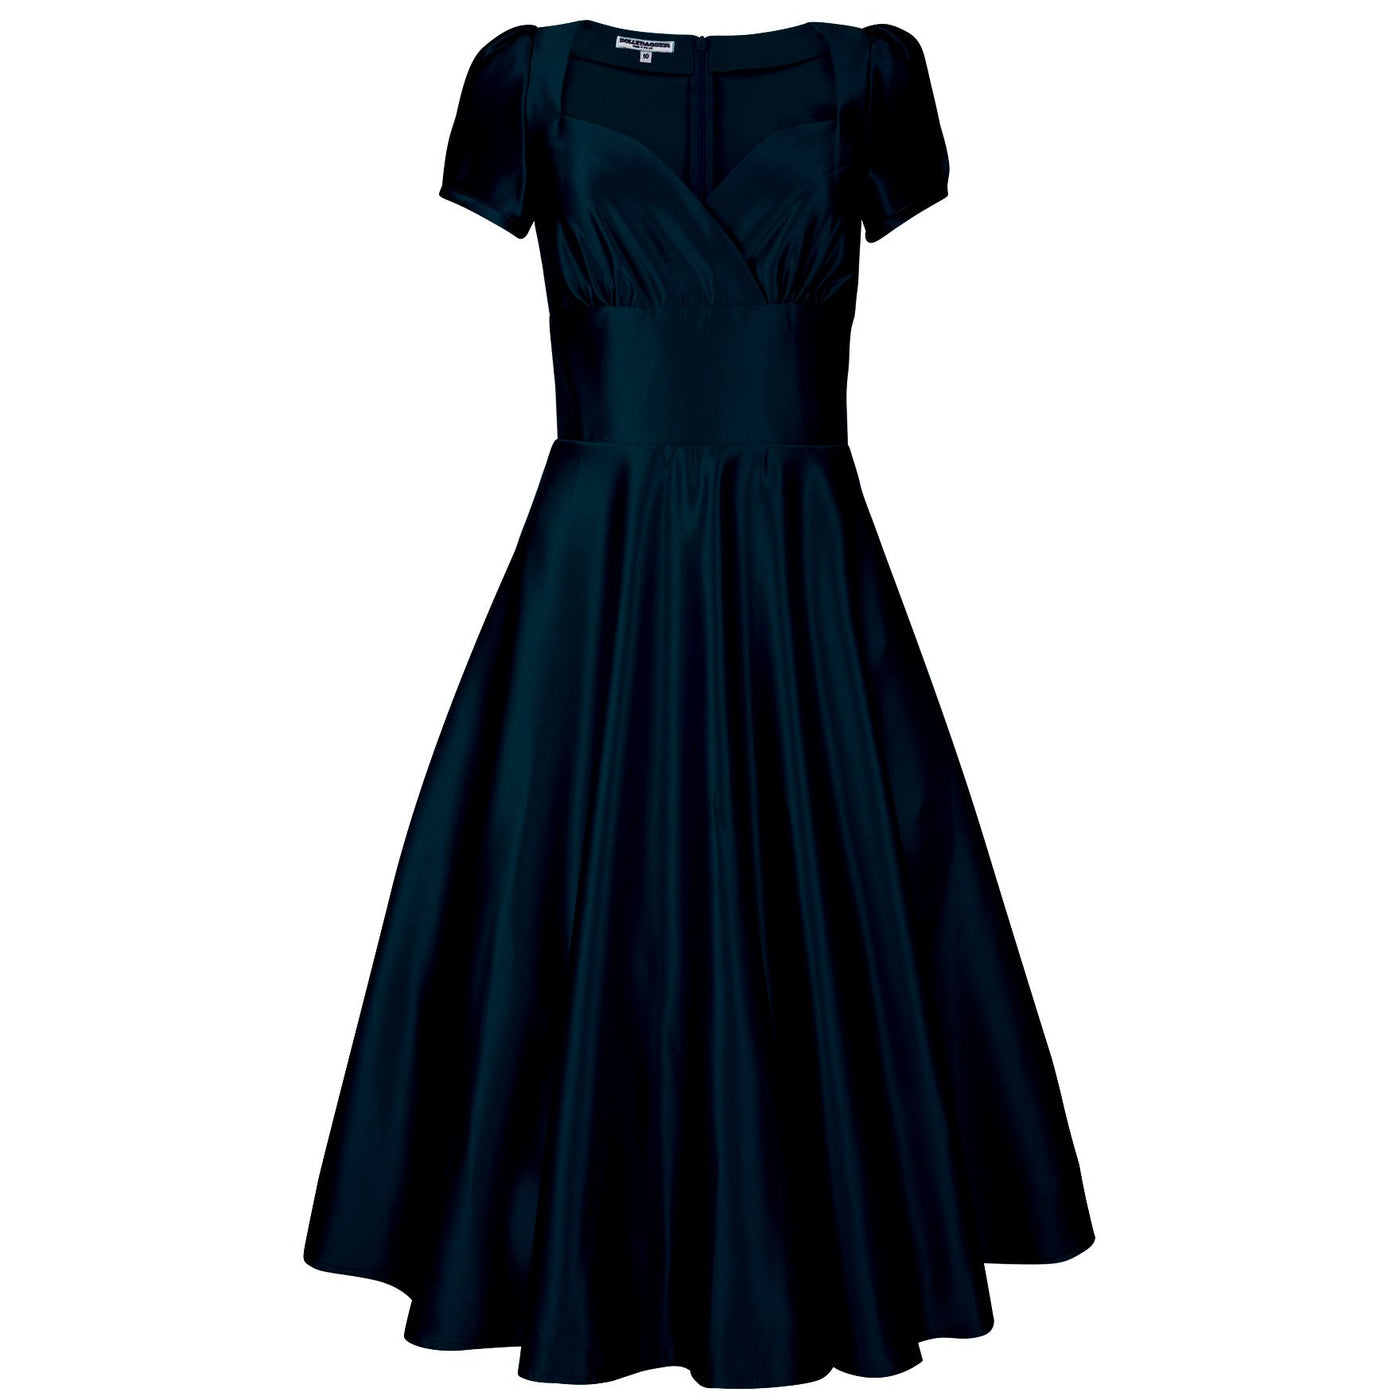 Dollydagger Black Vivien Satin Dress